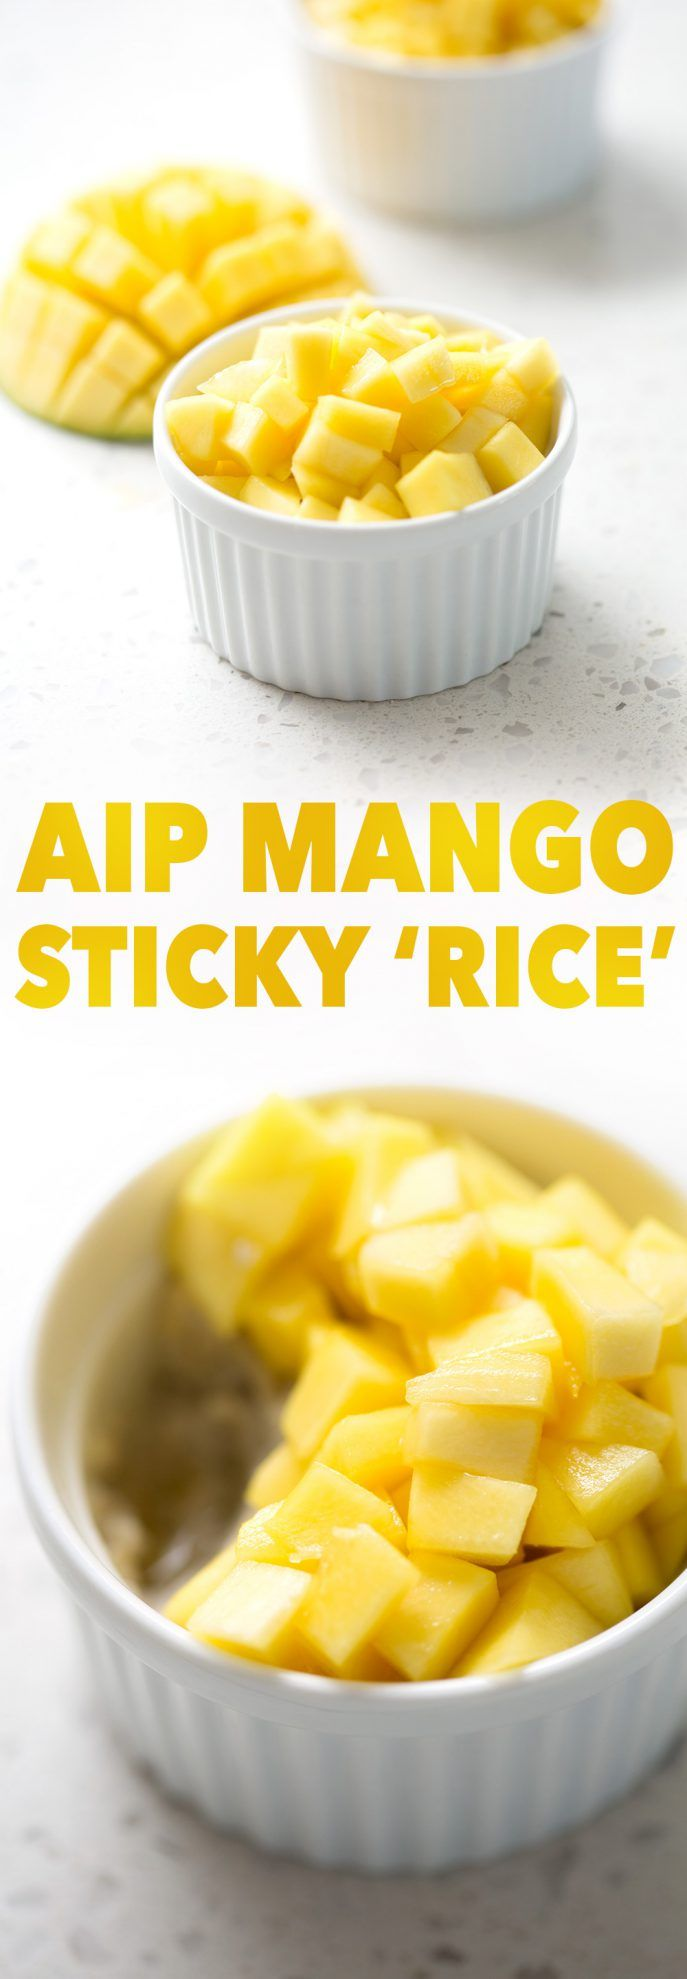 Here's a Mango 'Sticky Rice' that's full of coconut flavor, just minus the rice. Plantains replace the rice in this recipe to make it AIP-friendly. This recipe is allergy friendly (gluten, dairy, shellfish, nut, egg, and soy free) and suits the autoimmune protocol diet (AIP) and paleo diets.